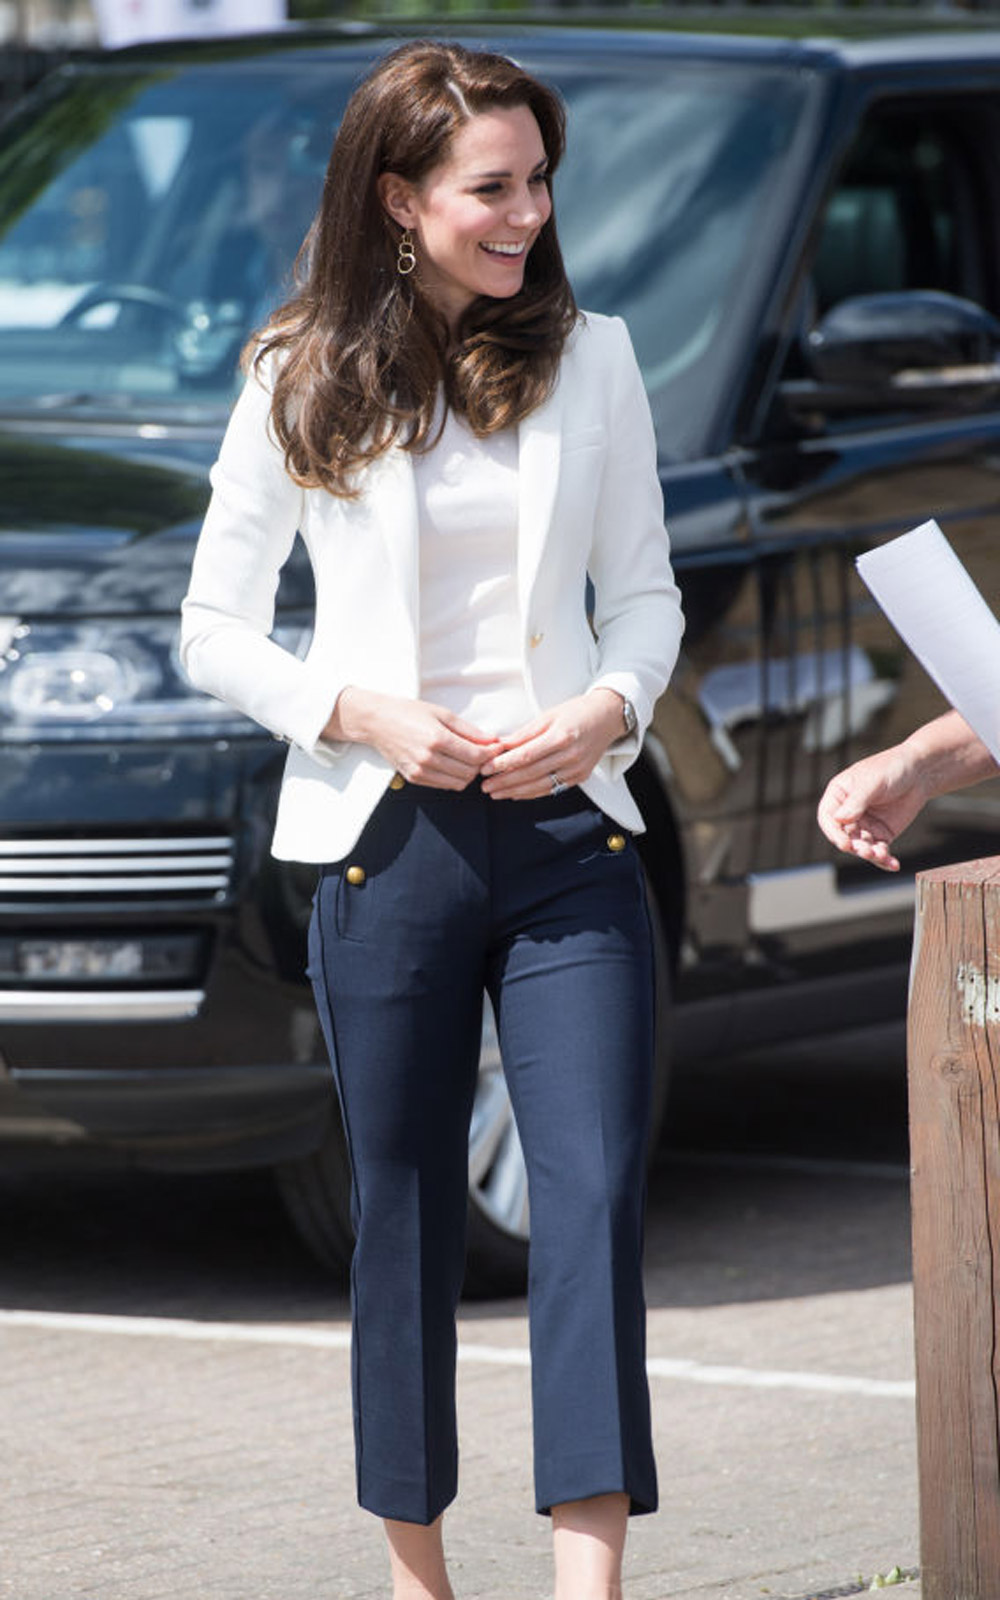 LONDON, ENGLAND - JUNE 16:  Catherine, Duchess of Cambridge visits the 1851 Trust roadshow at Docklands Sailing and Watersports Centre on June 16, 2017 in London, England.  The Duchess of Cambridge is patron of the 1851 Trust.  (Photo by Samir Hussein/Sam